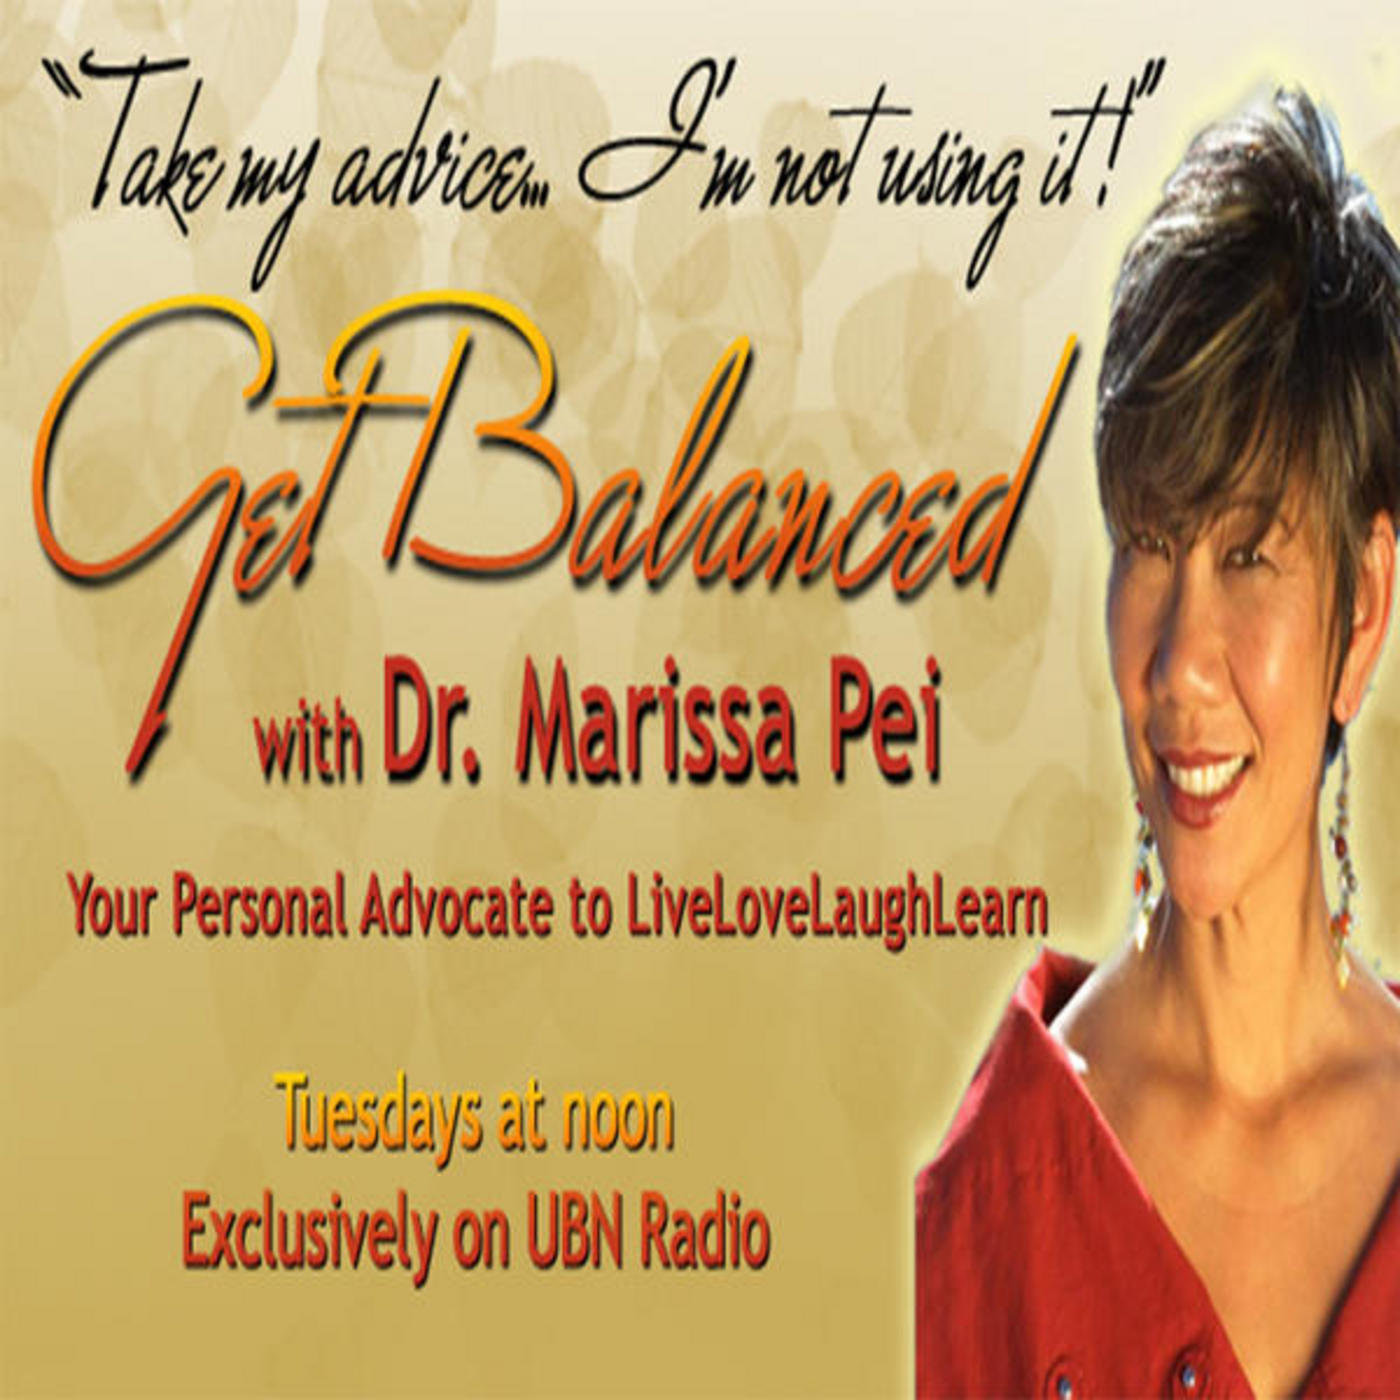 Dr. Marissa helps Callers with Single Mom challenges and making Money